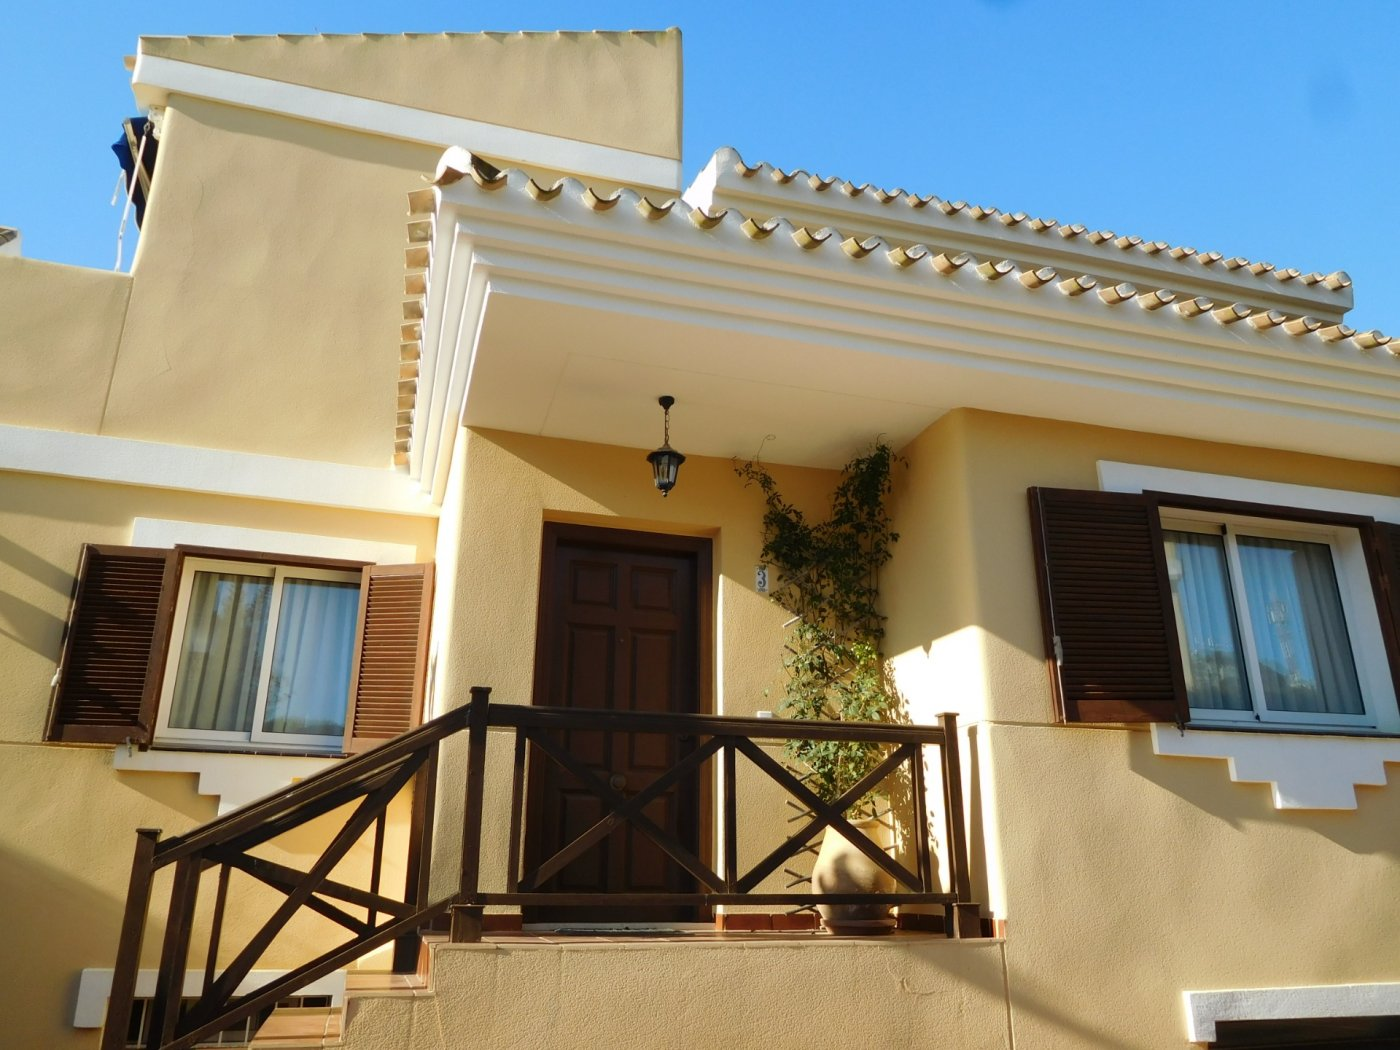 Gallery Image 34 of Casa For rent in Los Naranjos, La Manga Club With Pool